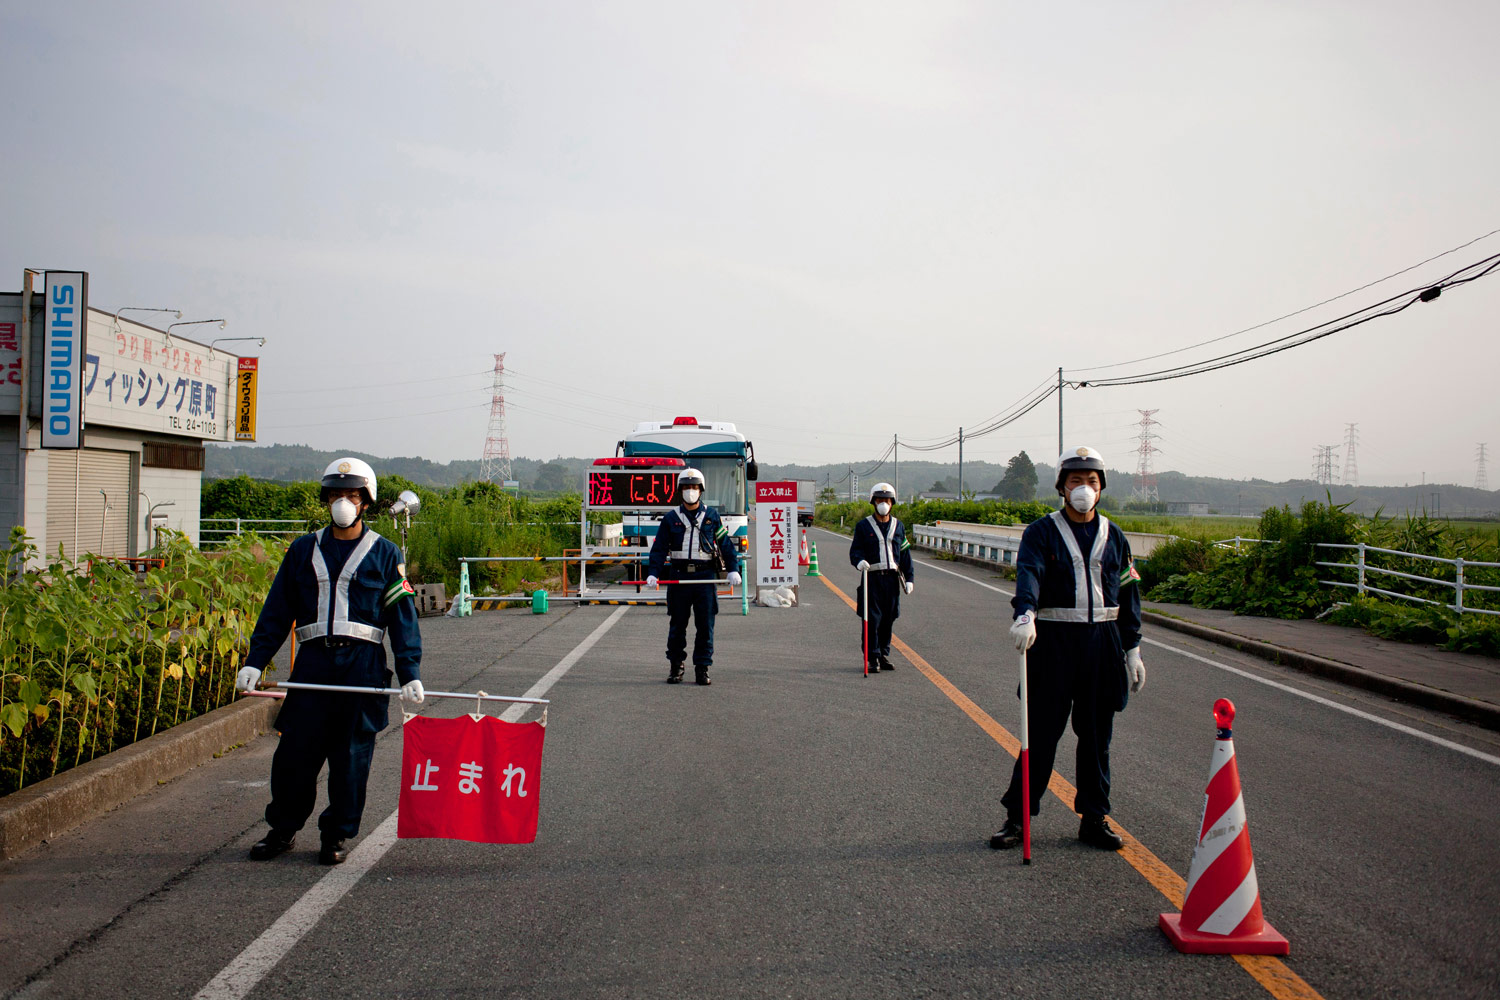 Police stand guard at a roadblock near Minamisoma, preventing access to the exclusion zone.